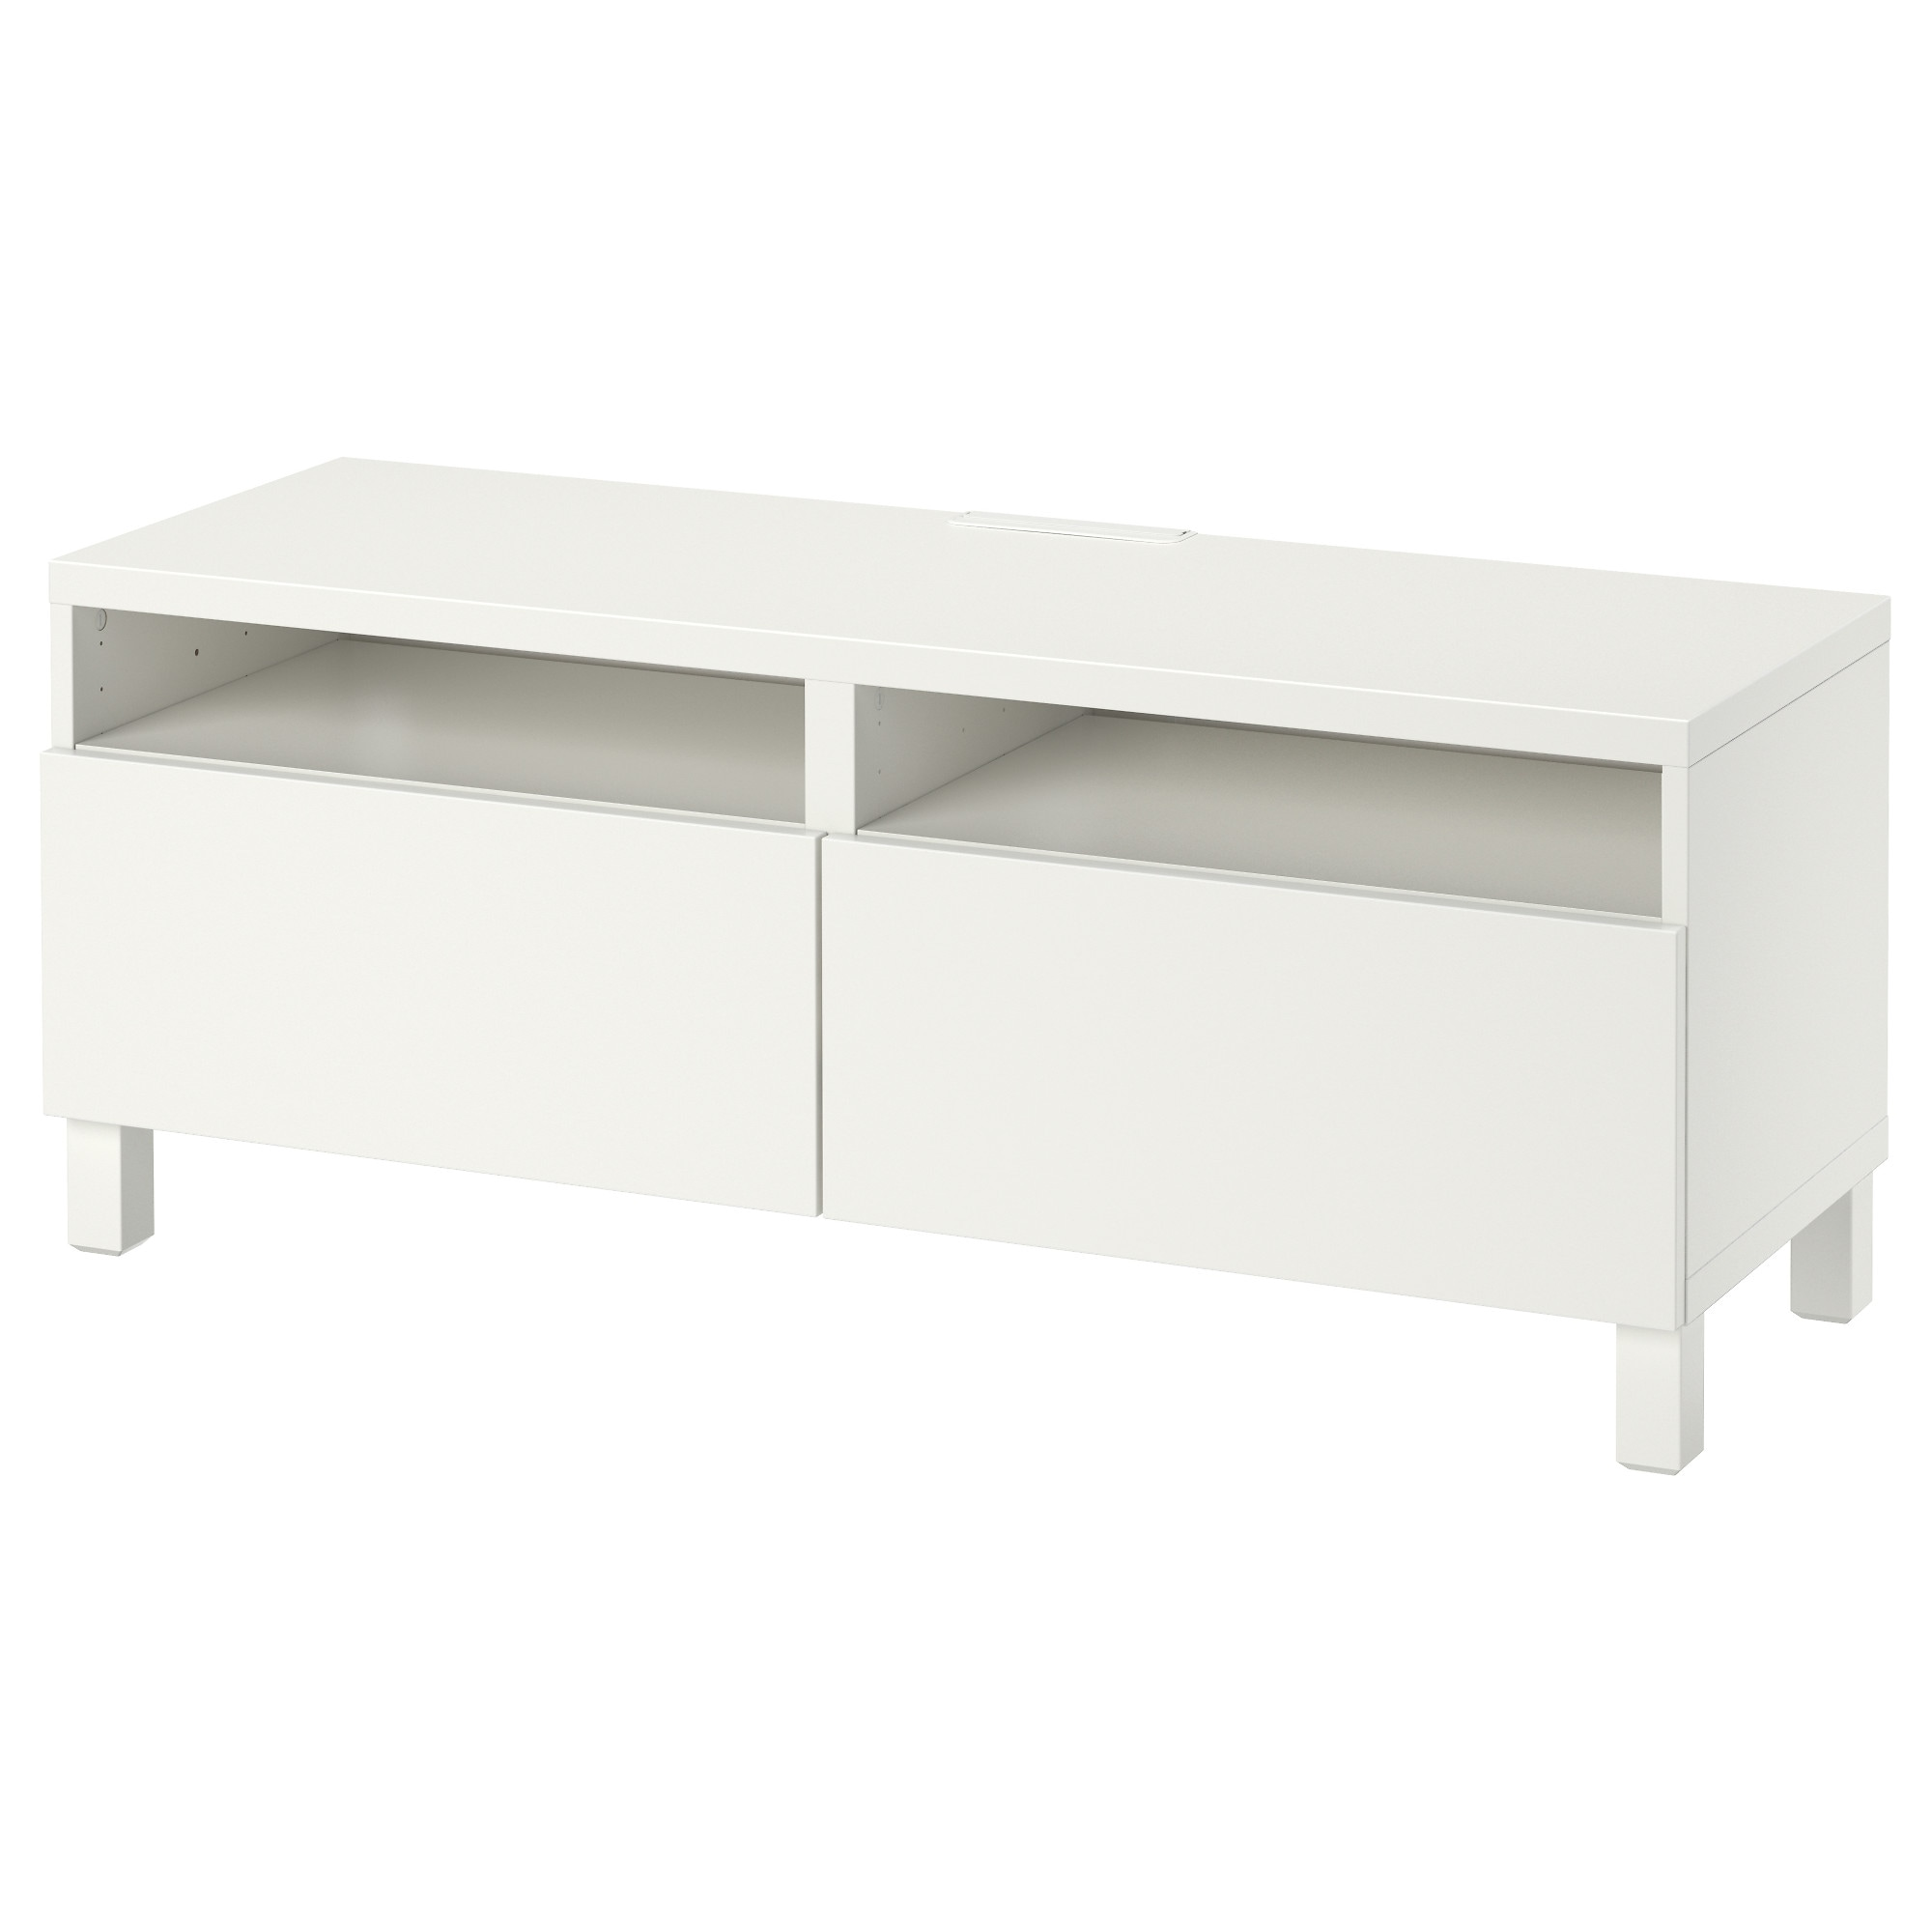 BEST… system binations & TV benches IKEA